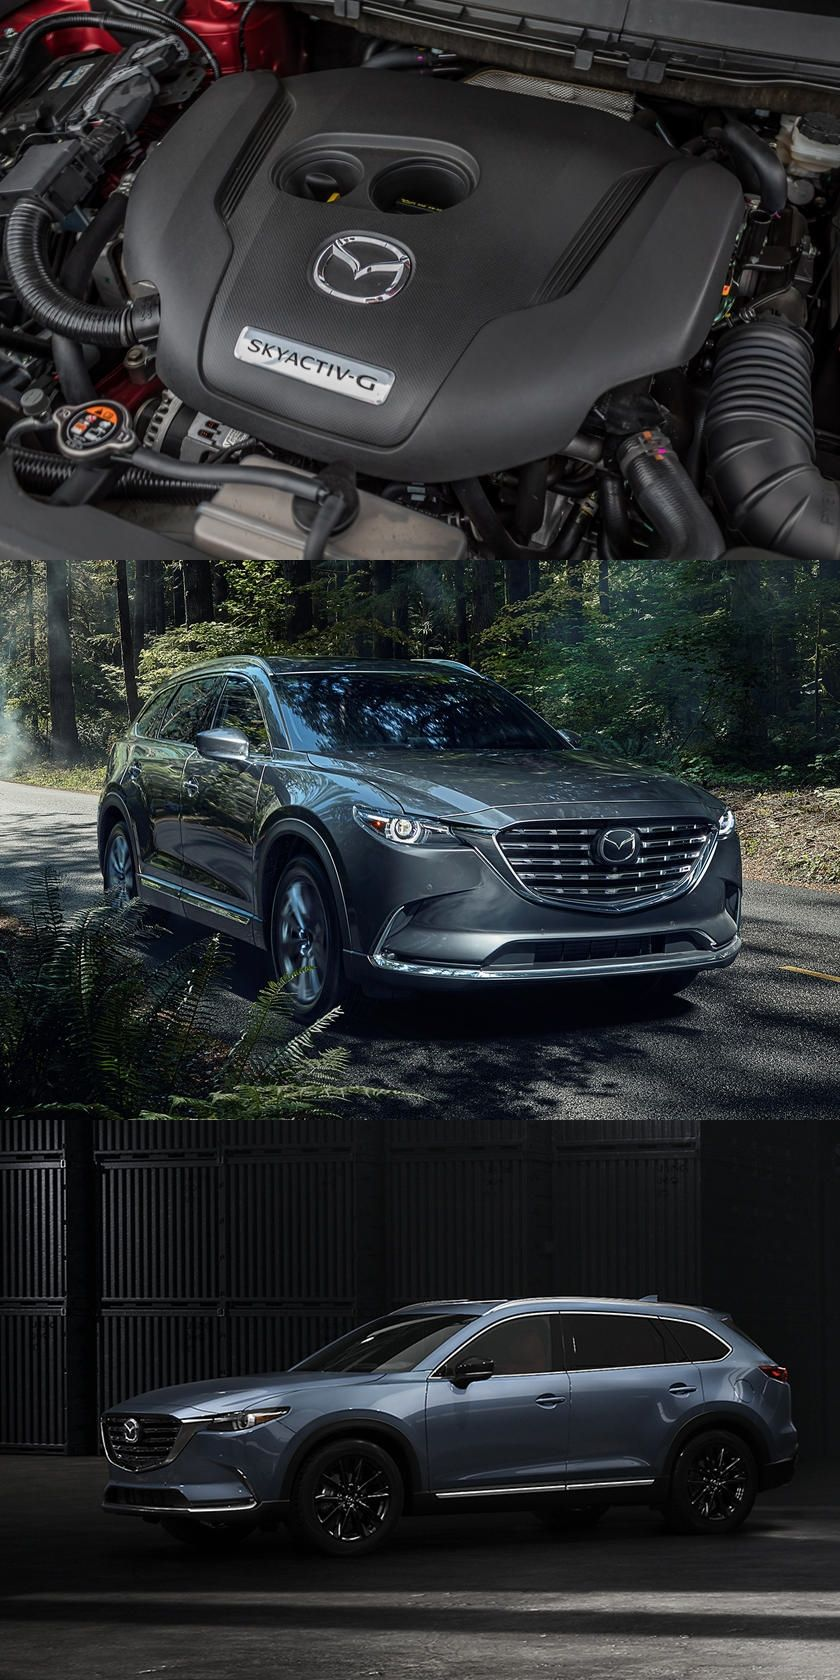 2021 Mazda Cx 9 Arrives With New Looks And Updated Interior Mazda S Largest Model Gets Some Much Needed Improvements In 2020 Mazda Cx 9 Mazda New Cars